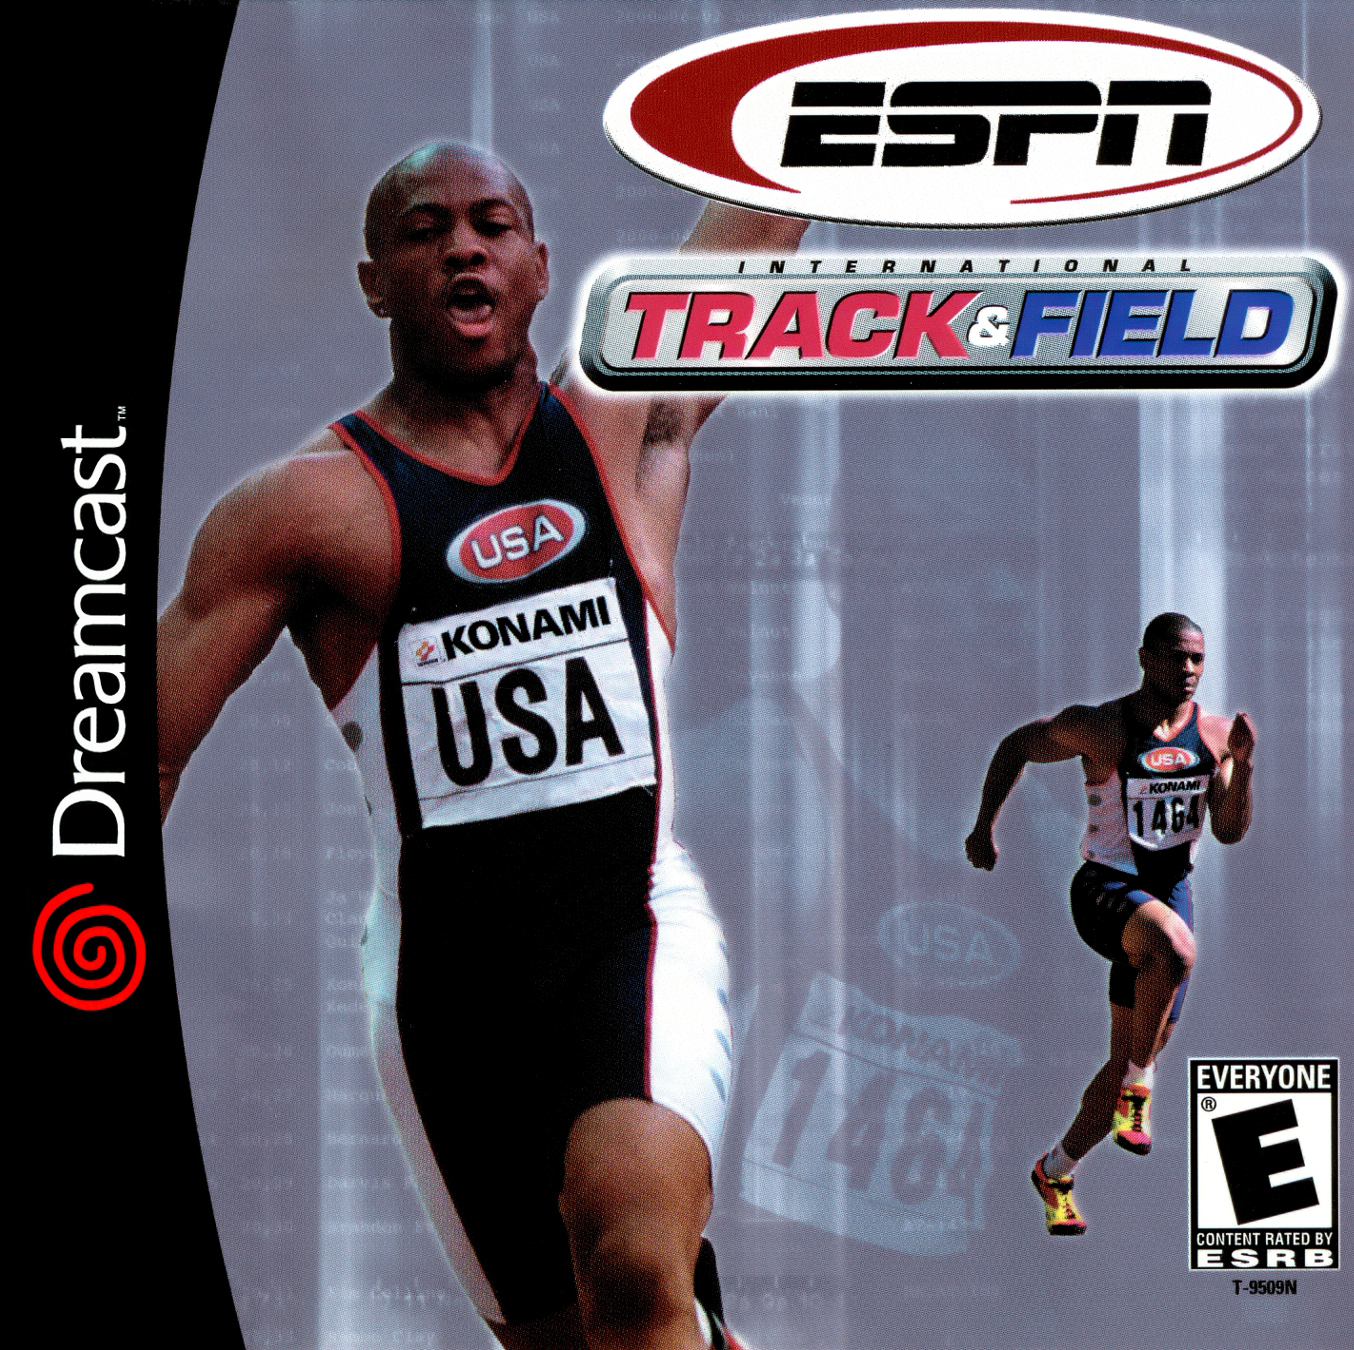 ESPN International Track And Field Dreamcast For Sega Dreamcast